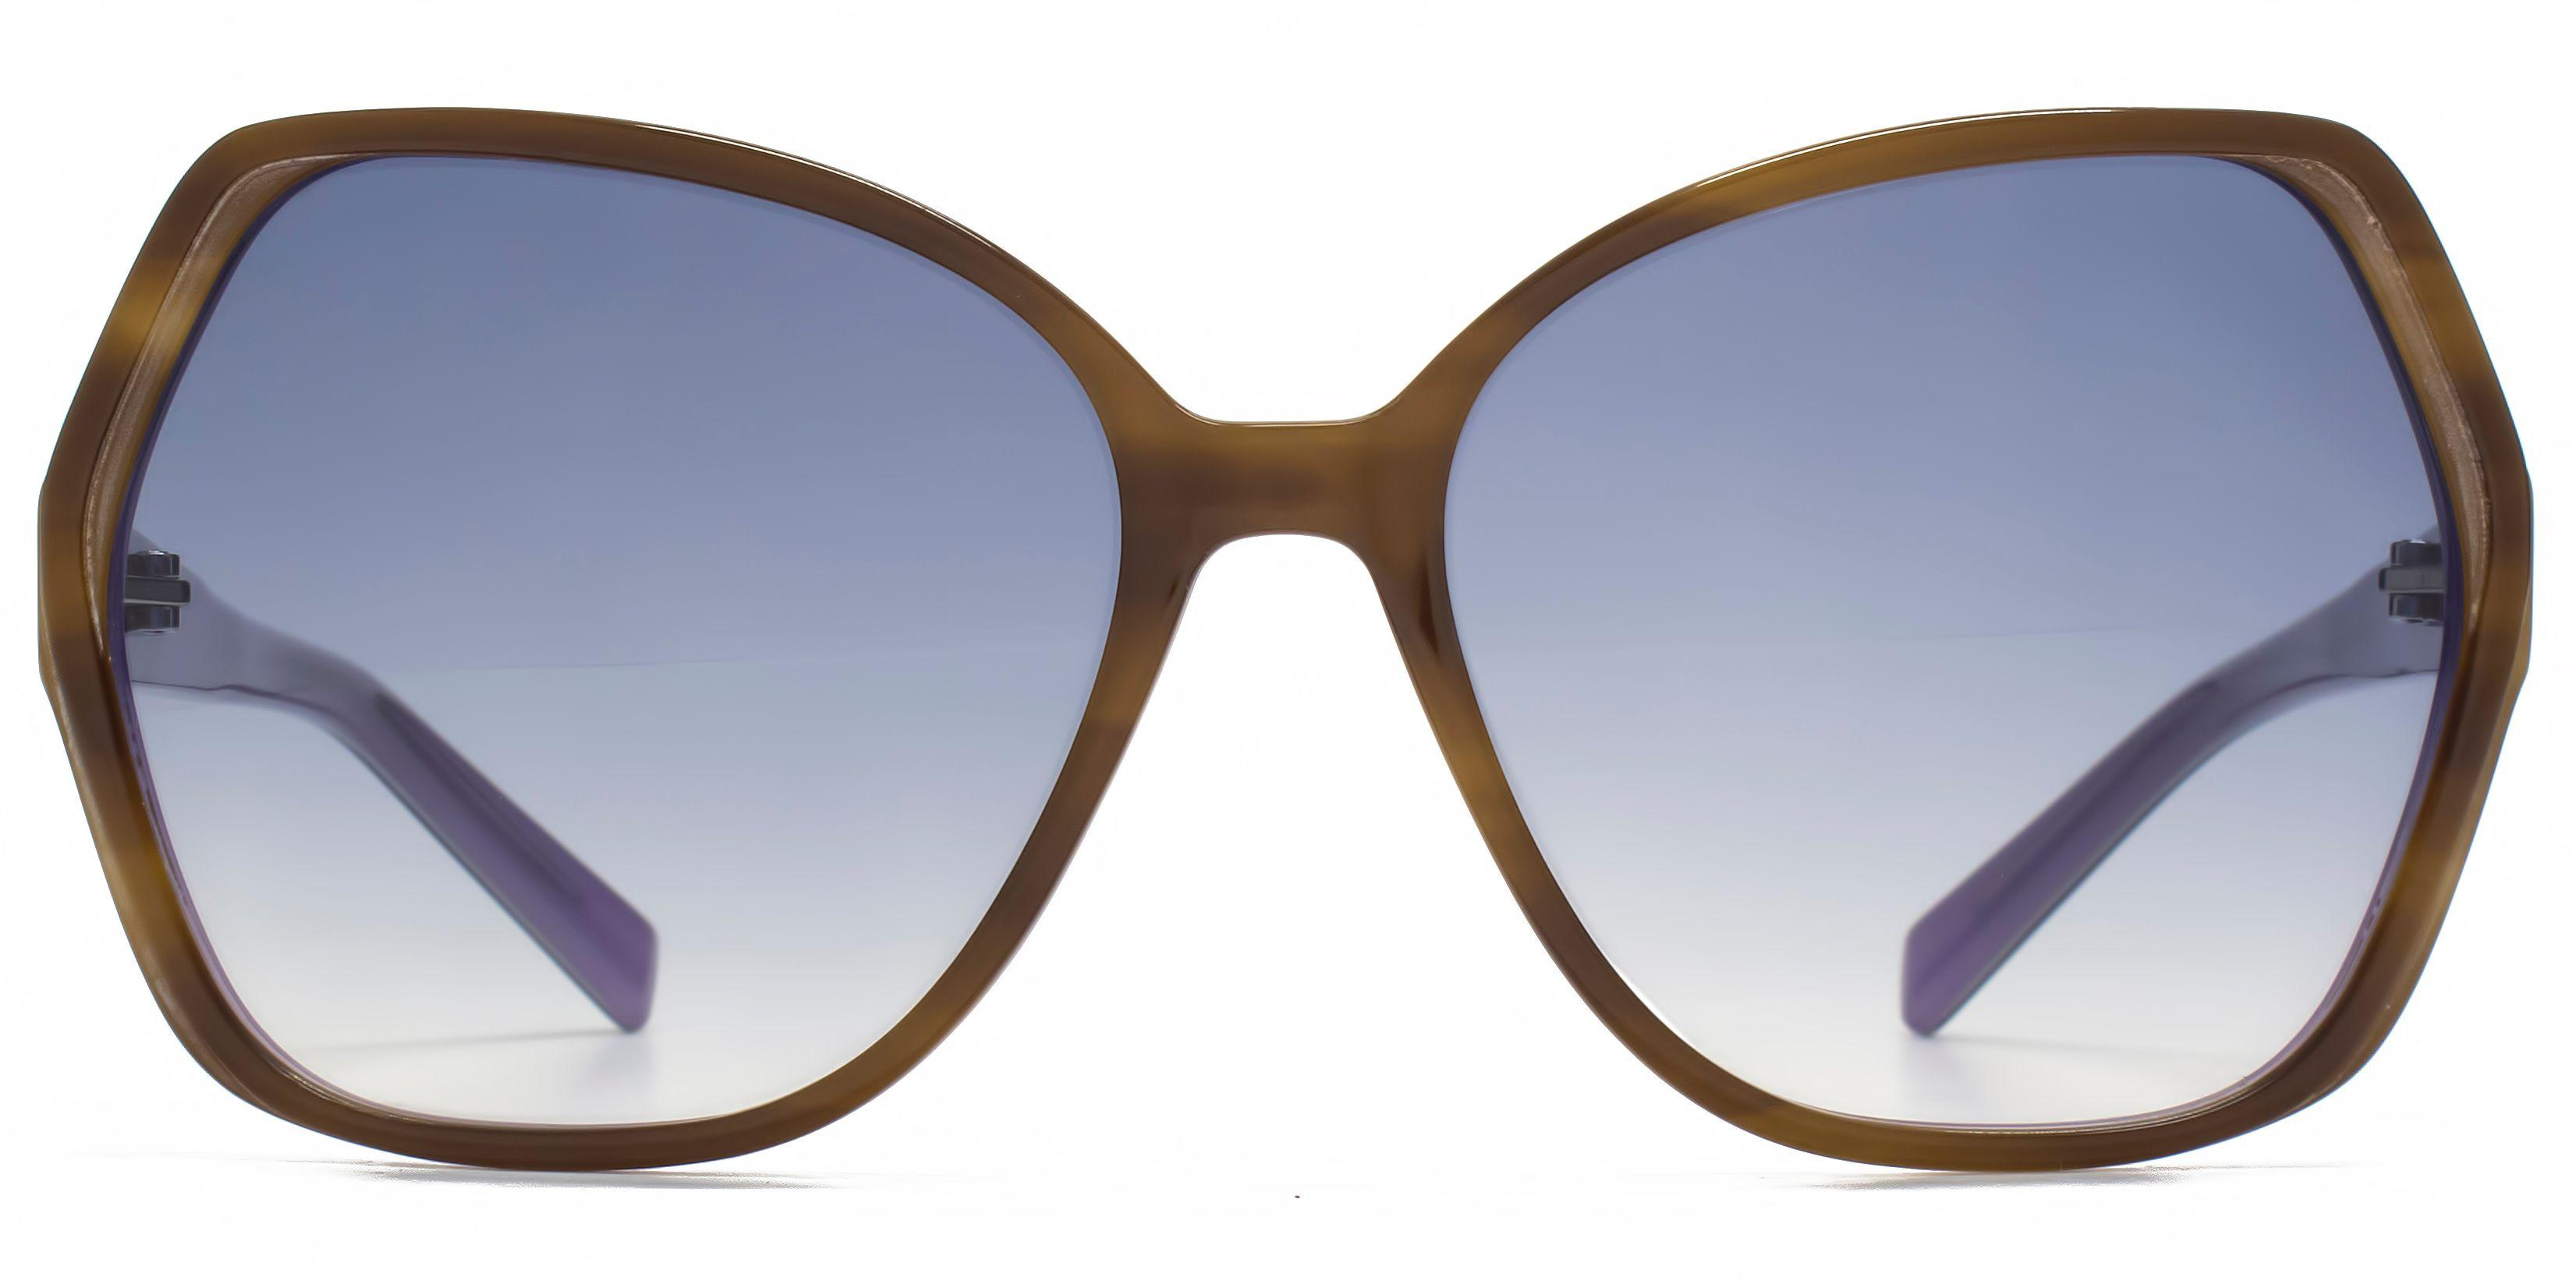 French Connection 26fca036 Horn Purple Glam Sunglasses in Blue